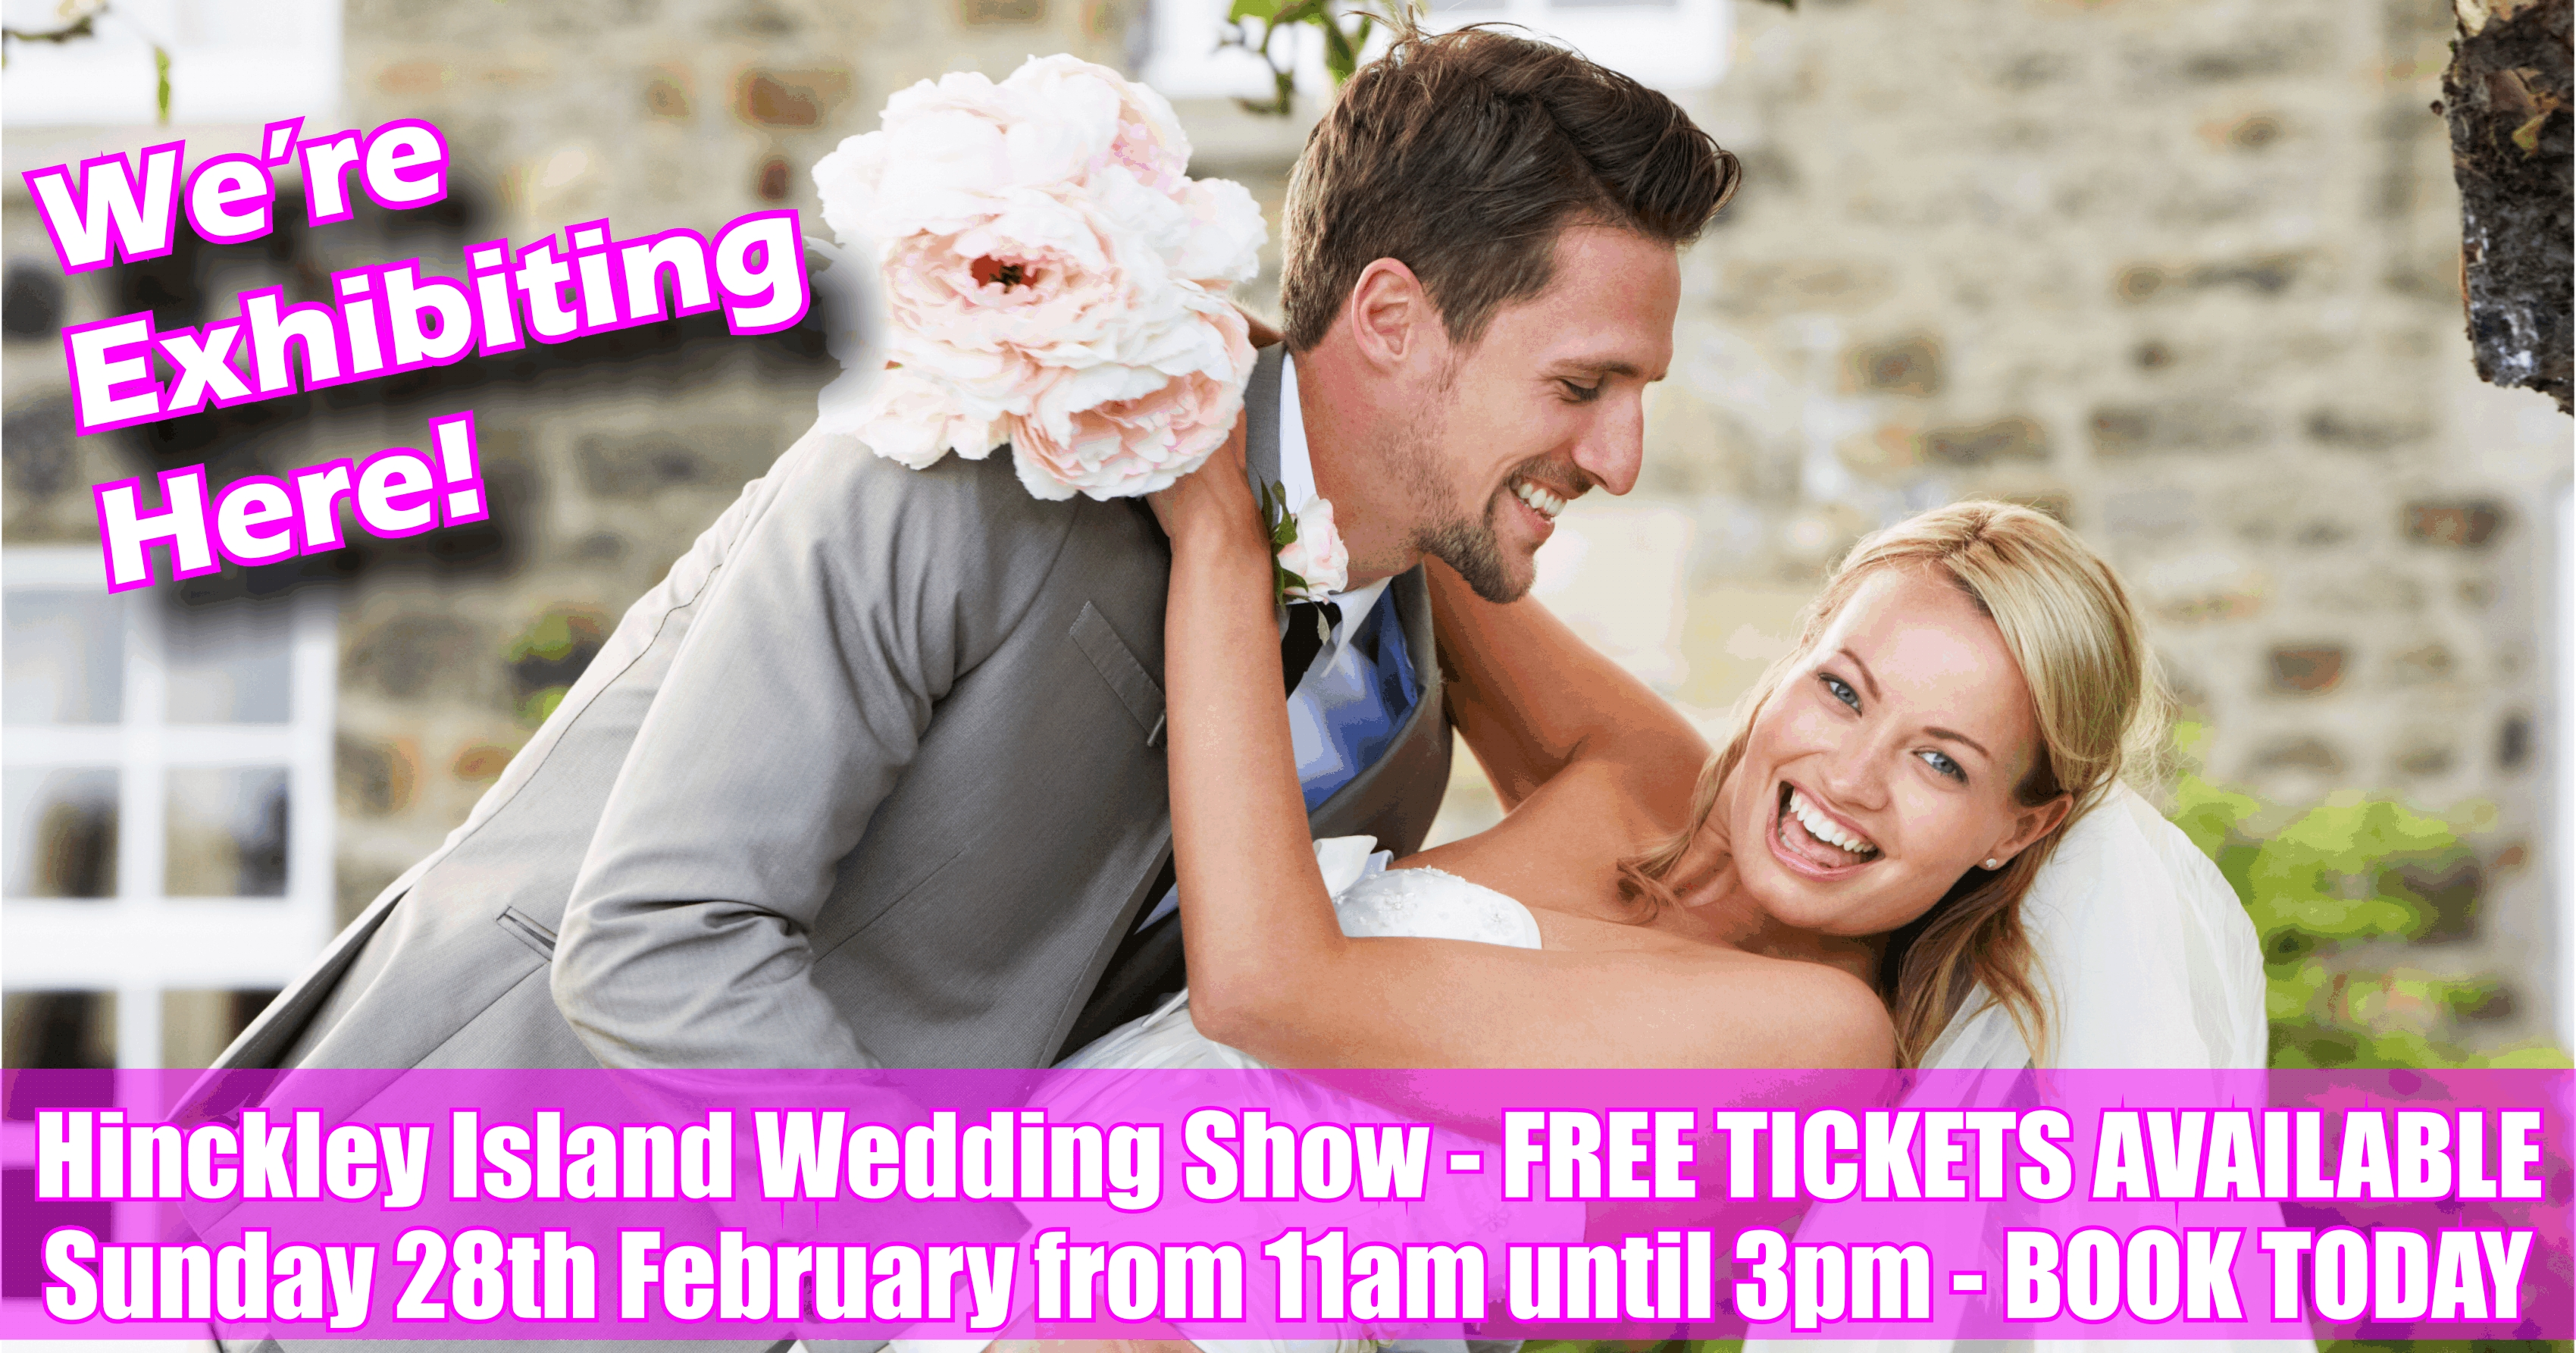 Hinckley Island Wedding Show Feb 2016